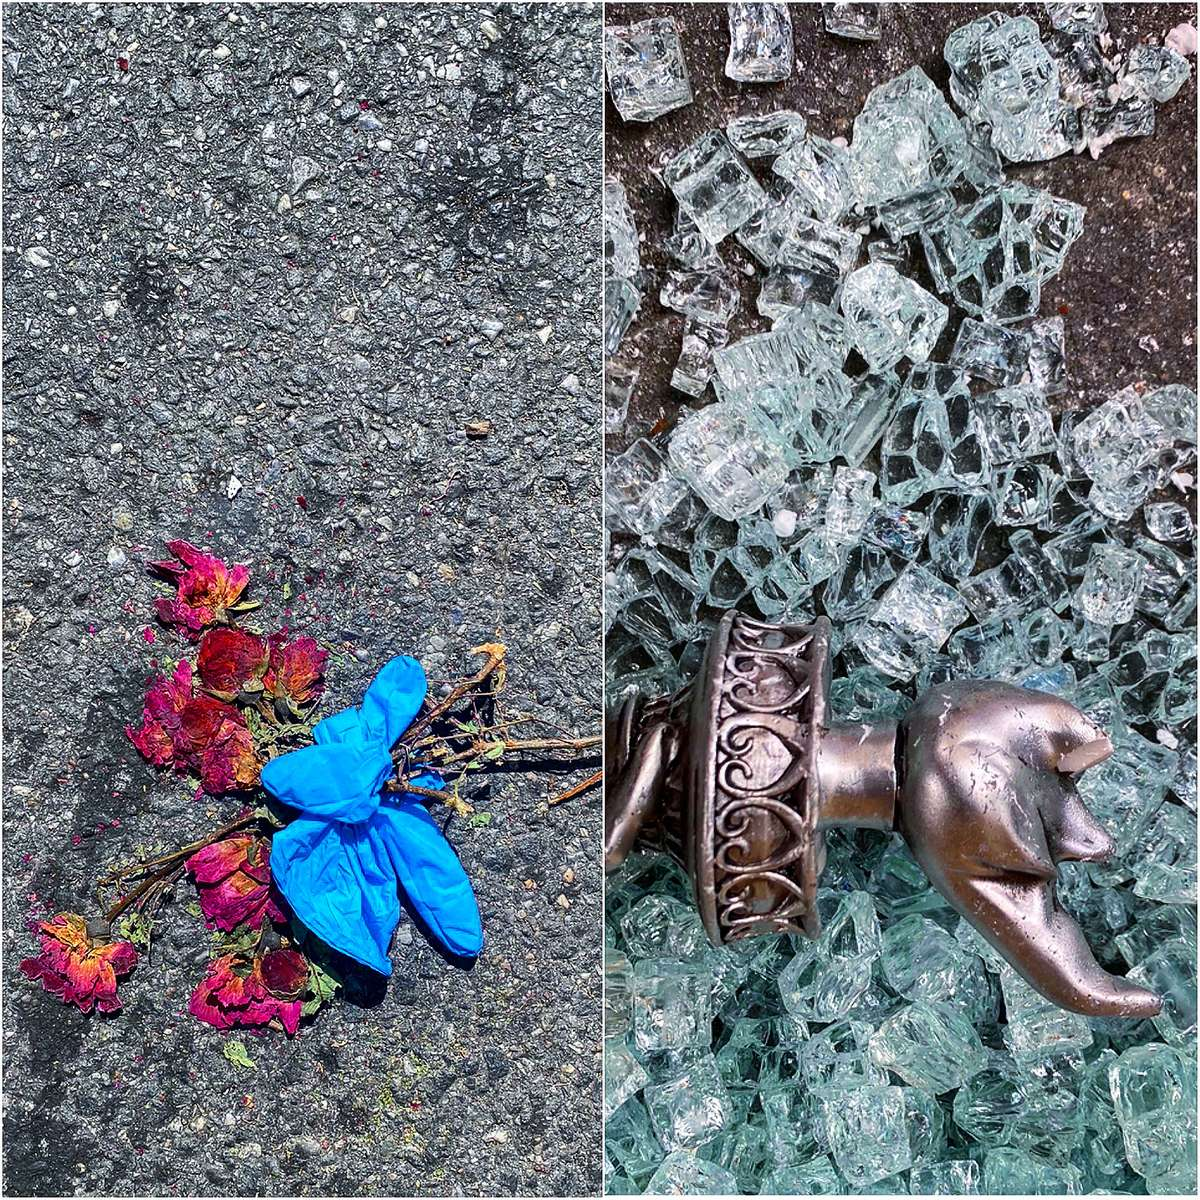 (Diptych, L-R) Gloves tied to dried roses, naturally flattened by traffic on Dekalb Avenue in Brooklyn + a broken liberty torch amongst shattered storefront glass in Times Square, during heavy protesting against police brutality and social inequality in New York, June of 2020.